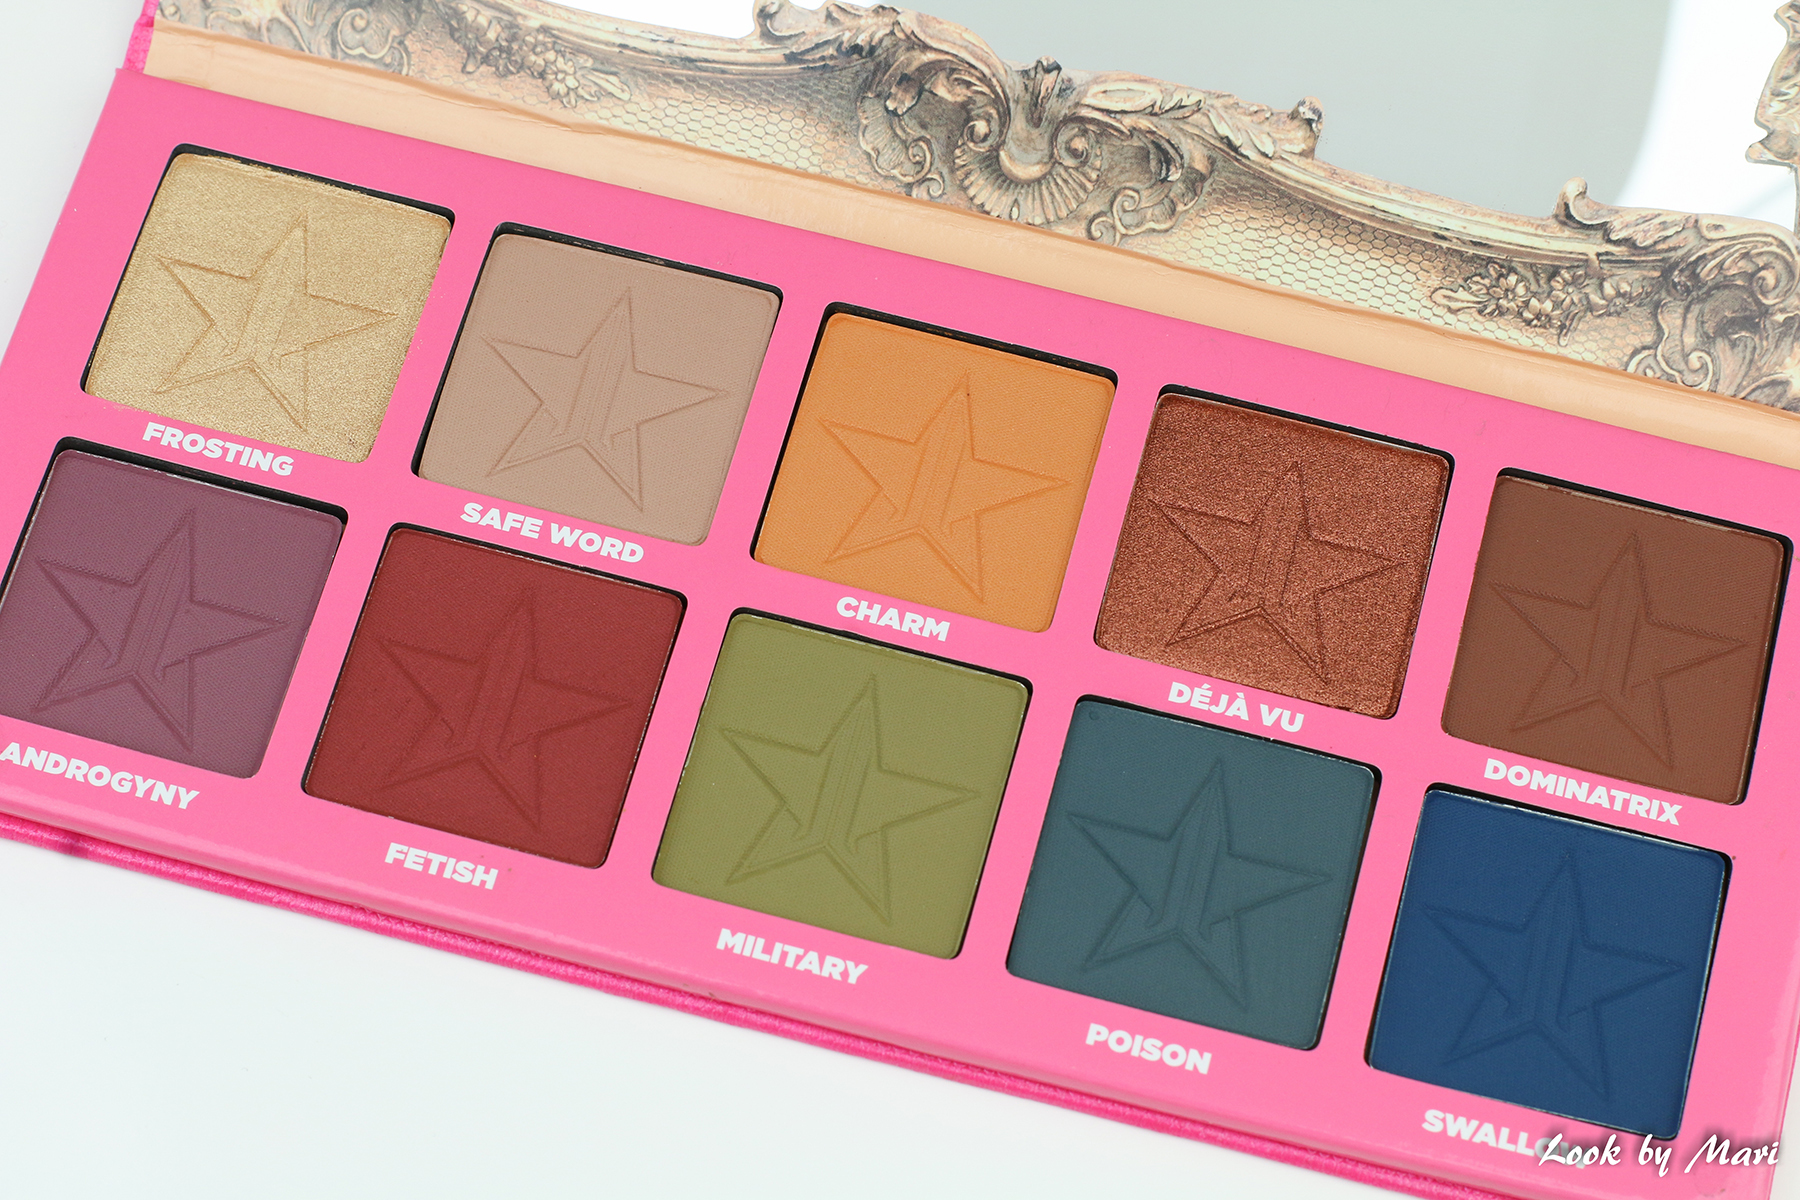 15 12 jeffree star androgyny eyeshadow palette colors review swatches oletkaunis.fi